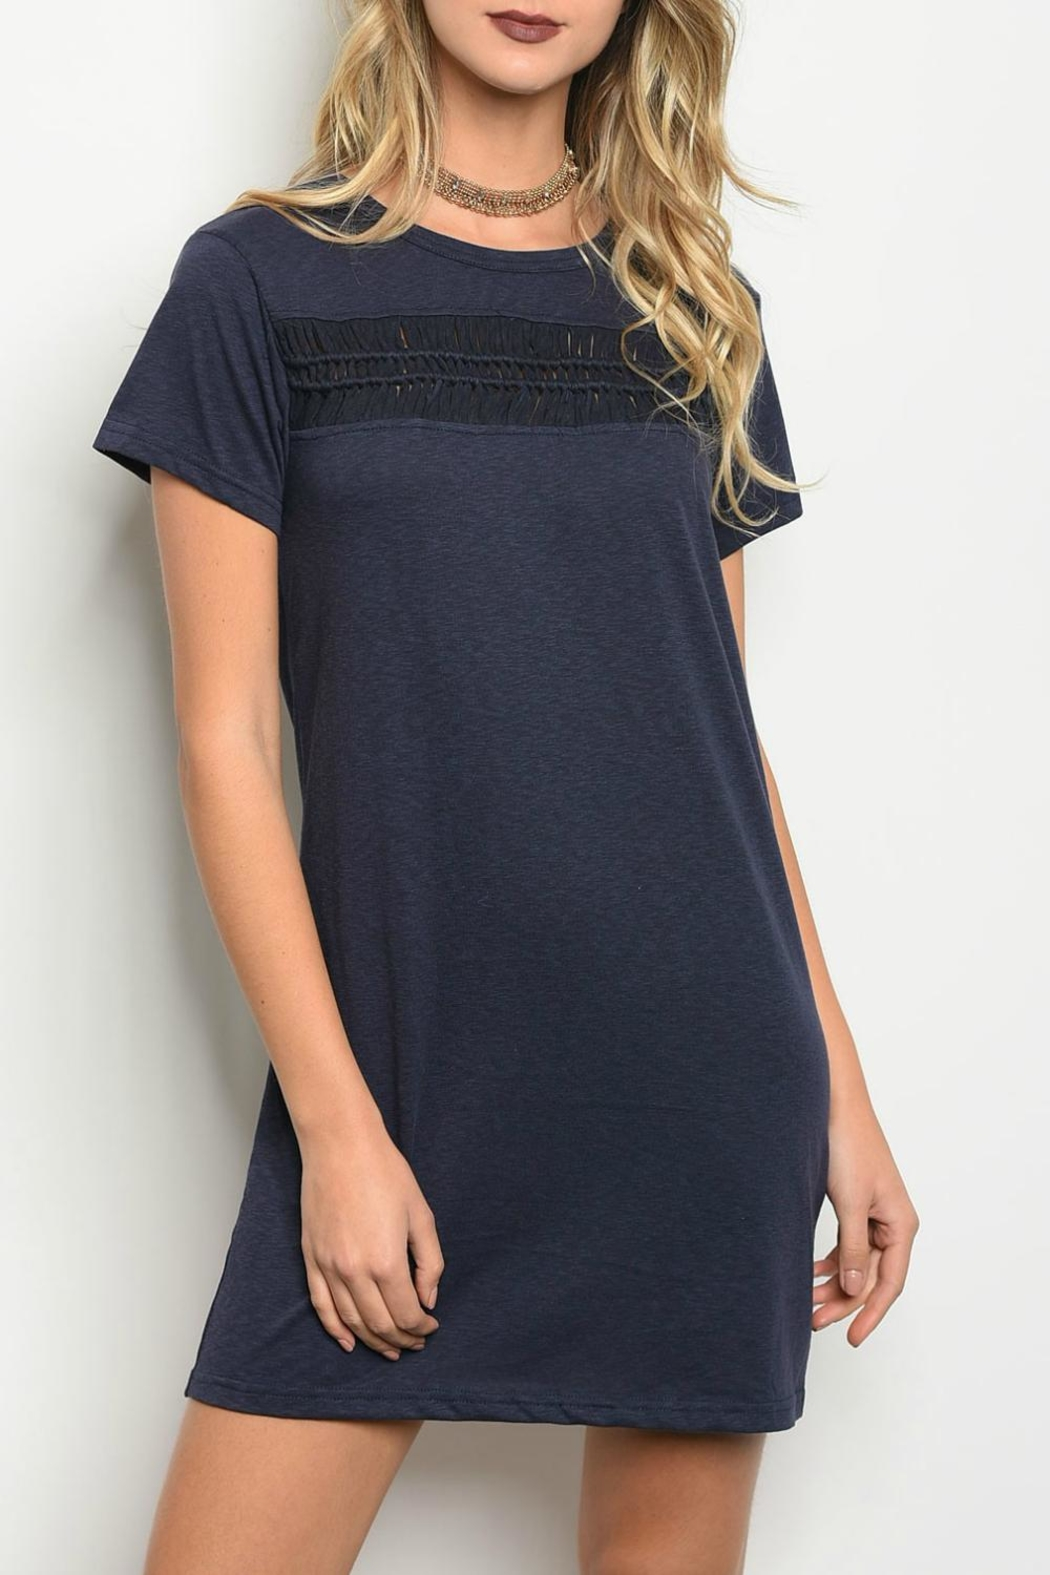 LoveRiche Navy Dress - Main Image